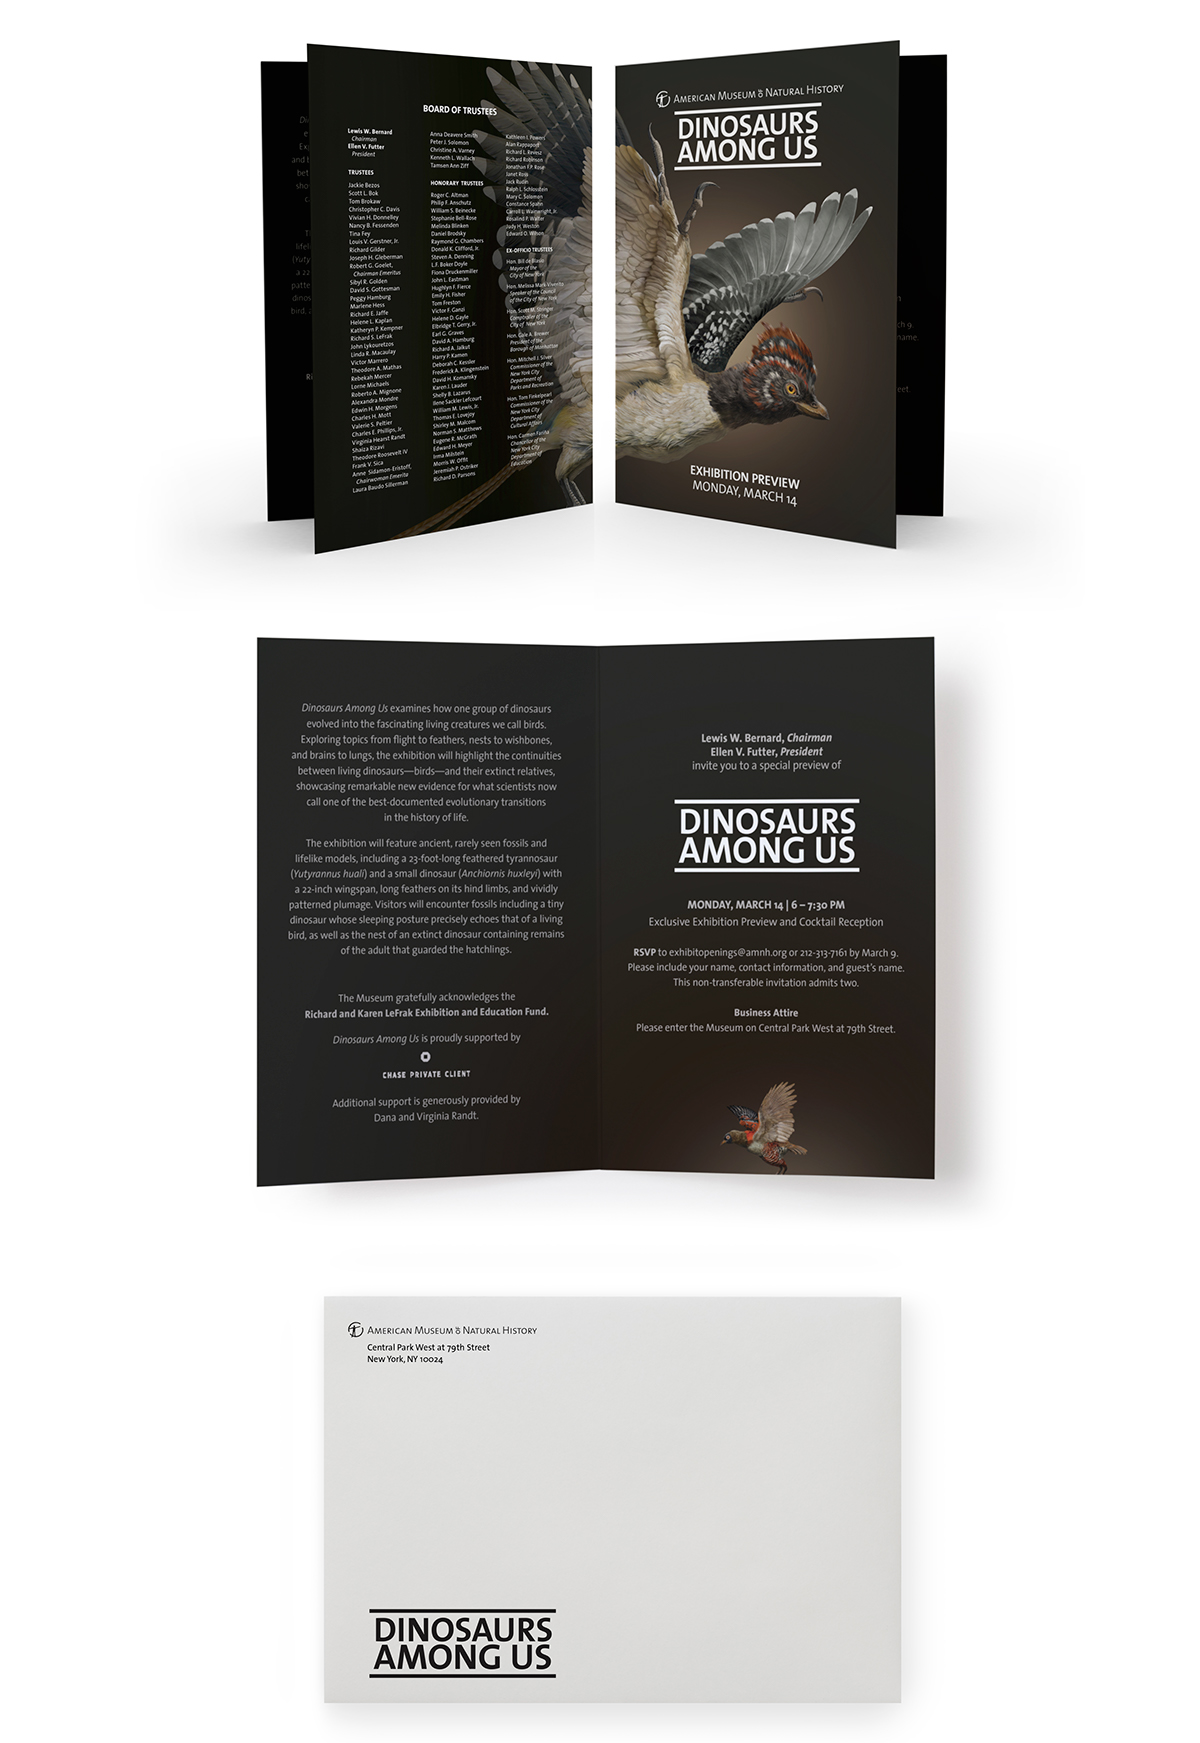 American Museum Of Natural History On Behance - Private museums in us